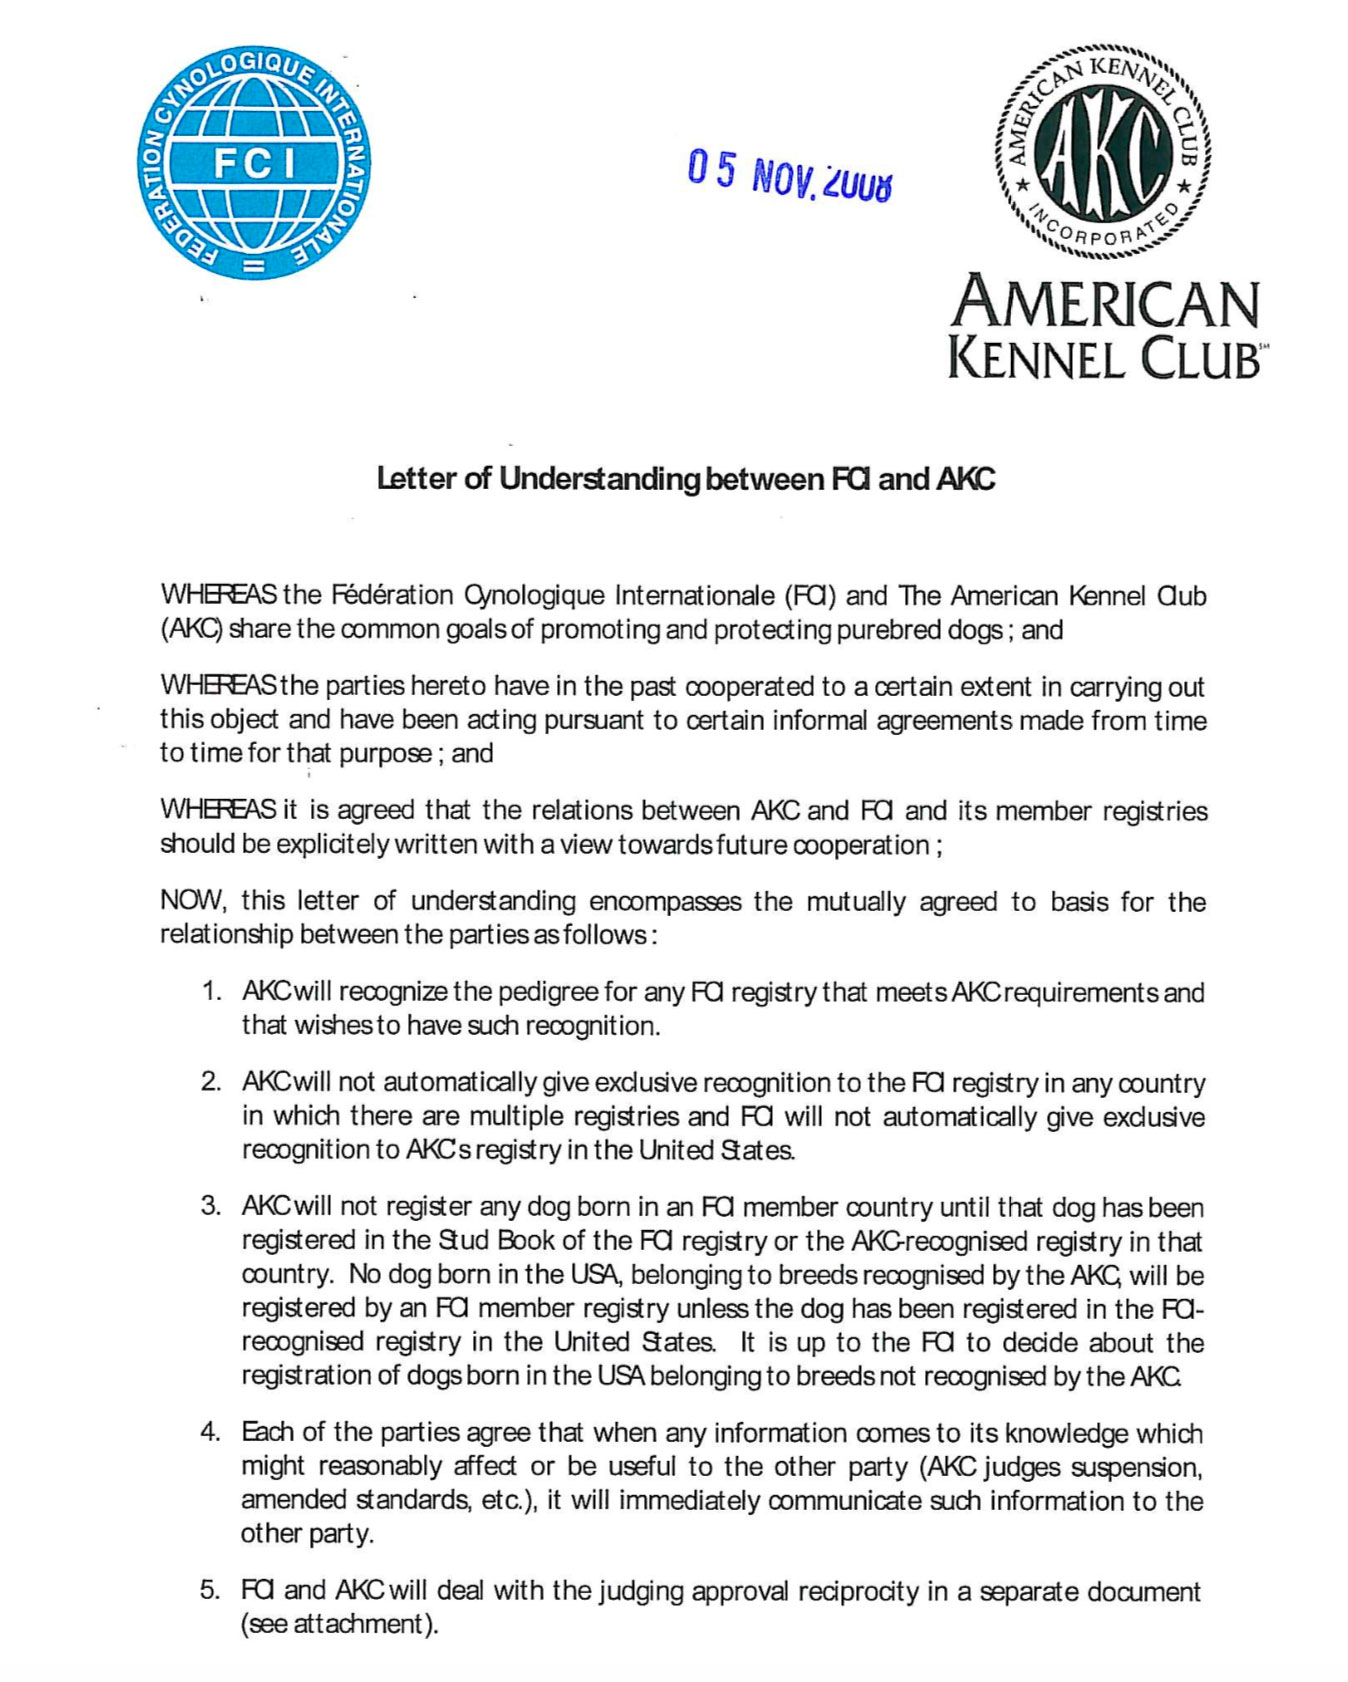 Letter of Understanding between FCI and AKC